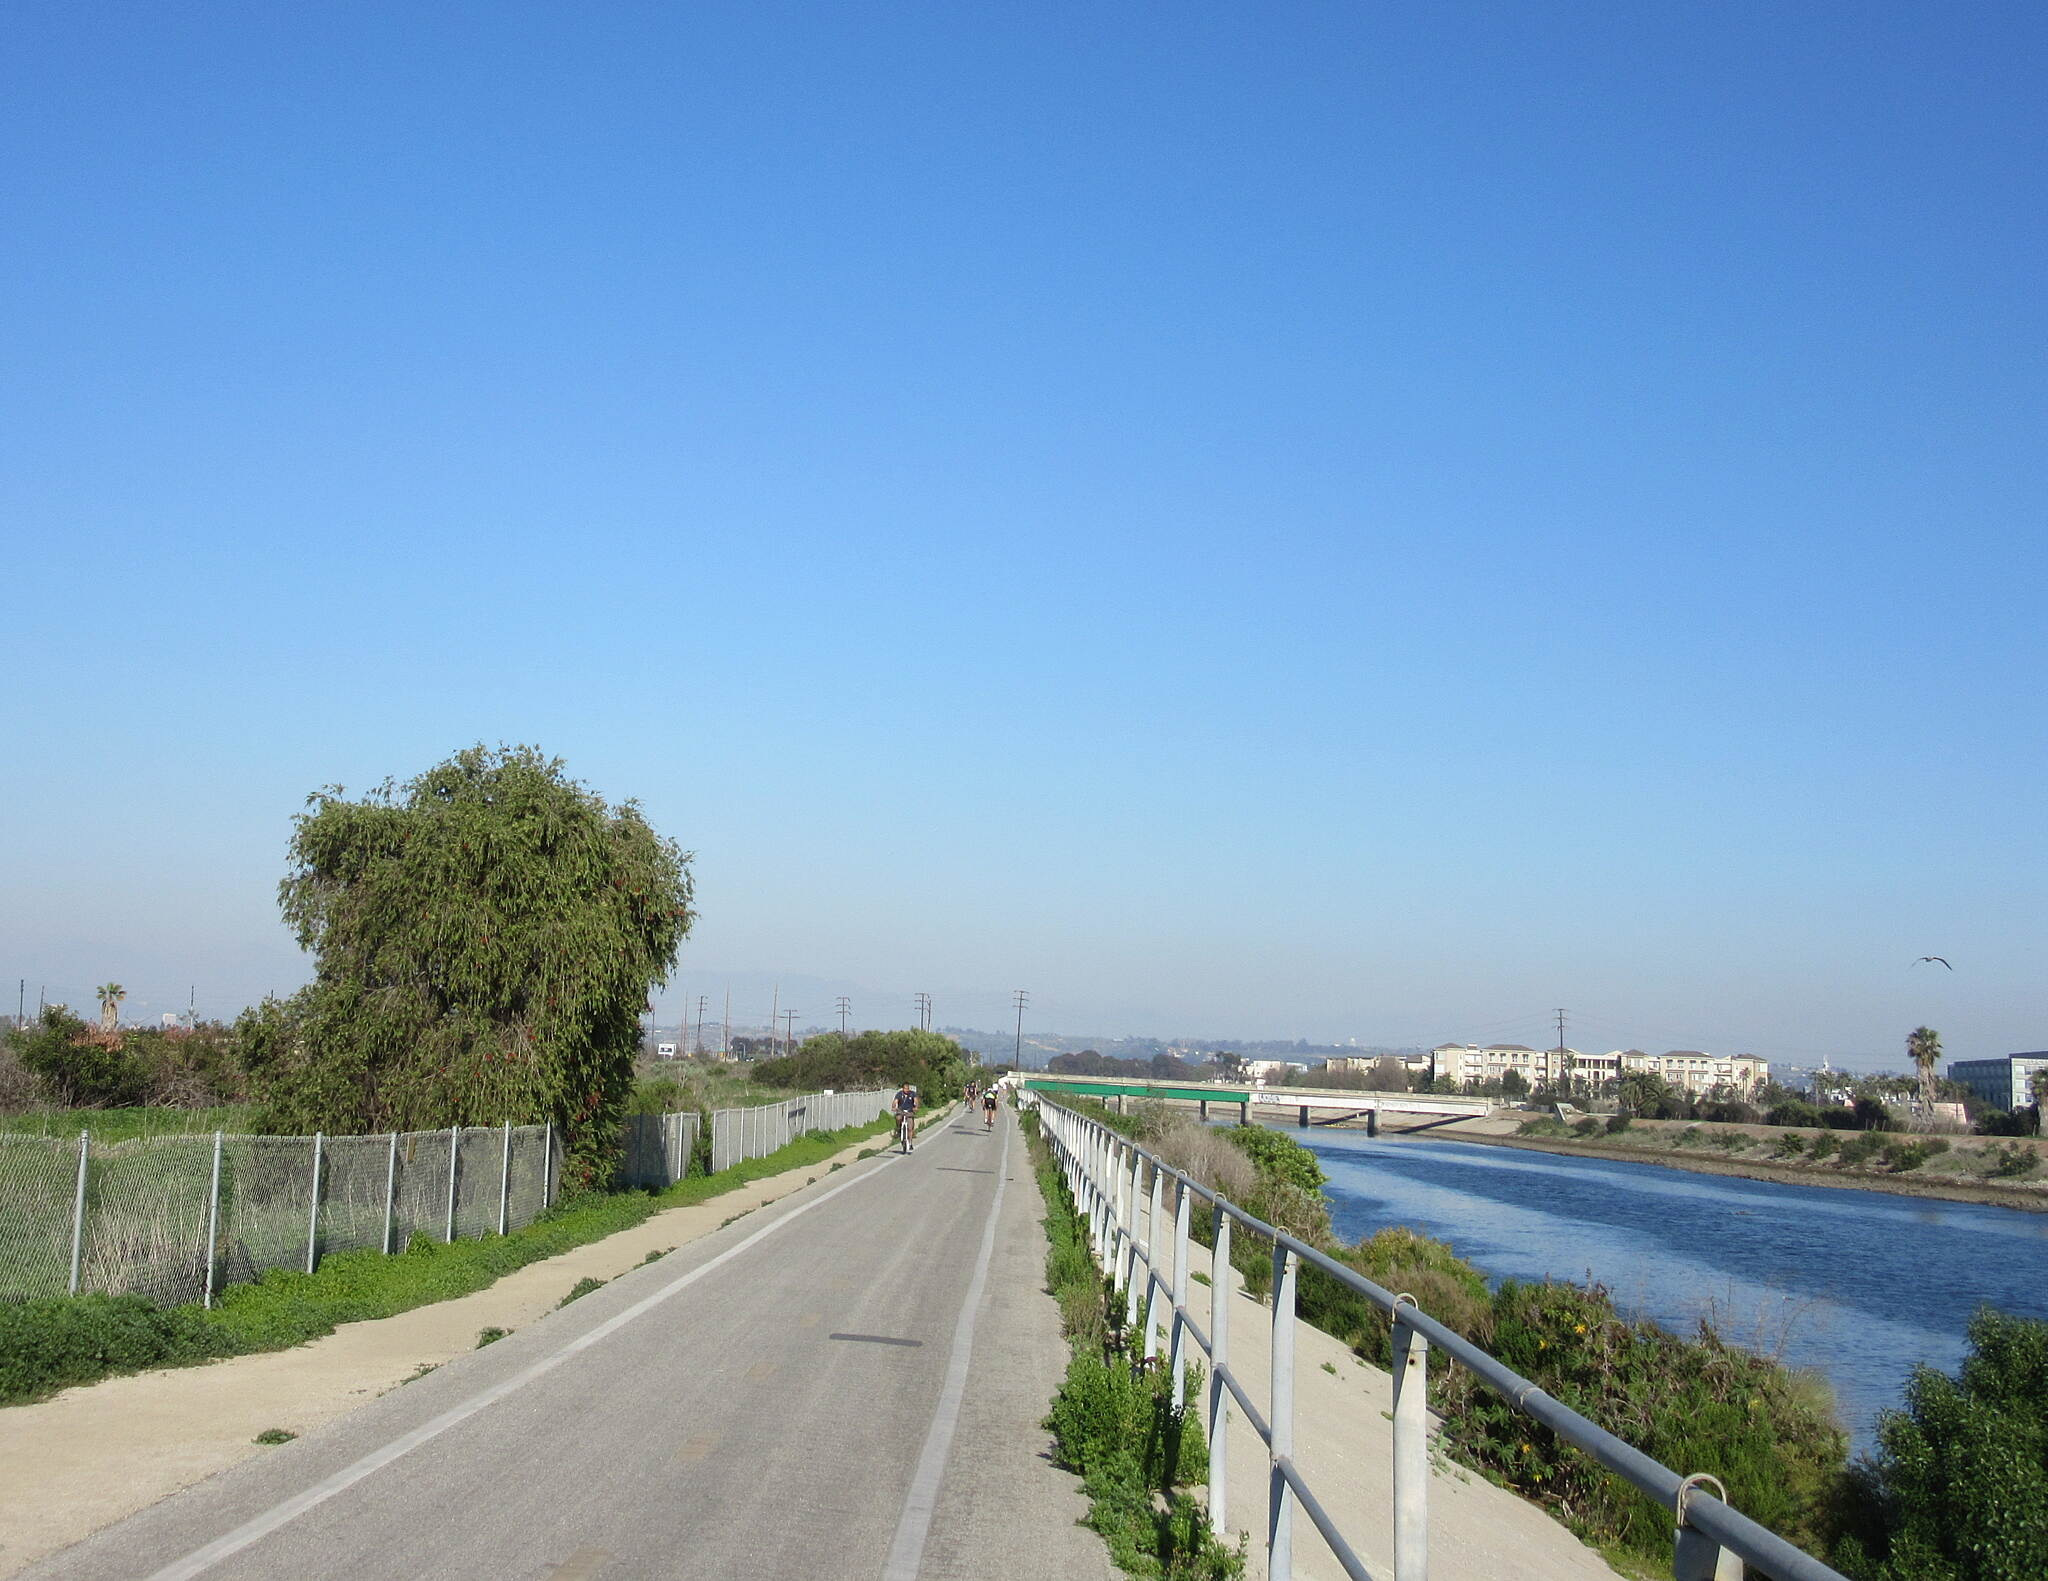 Ballona Creek Bike Path west end of trail passing through Ballona wetlands